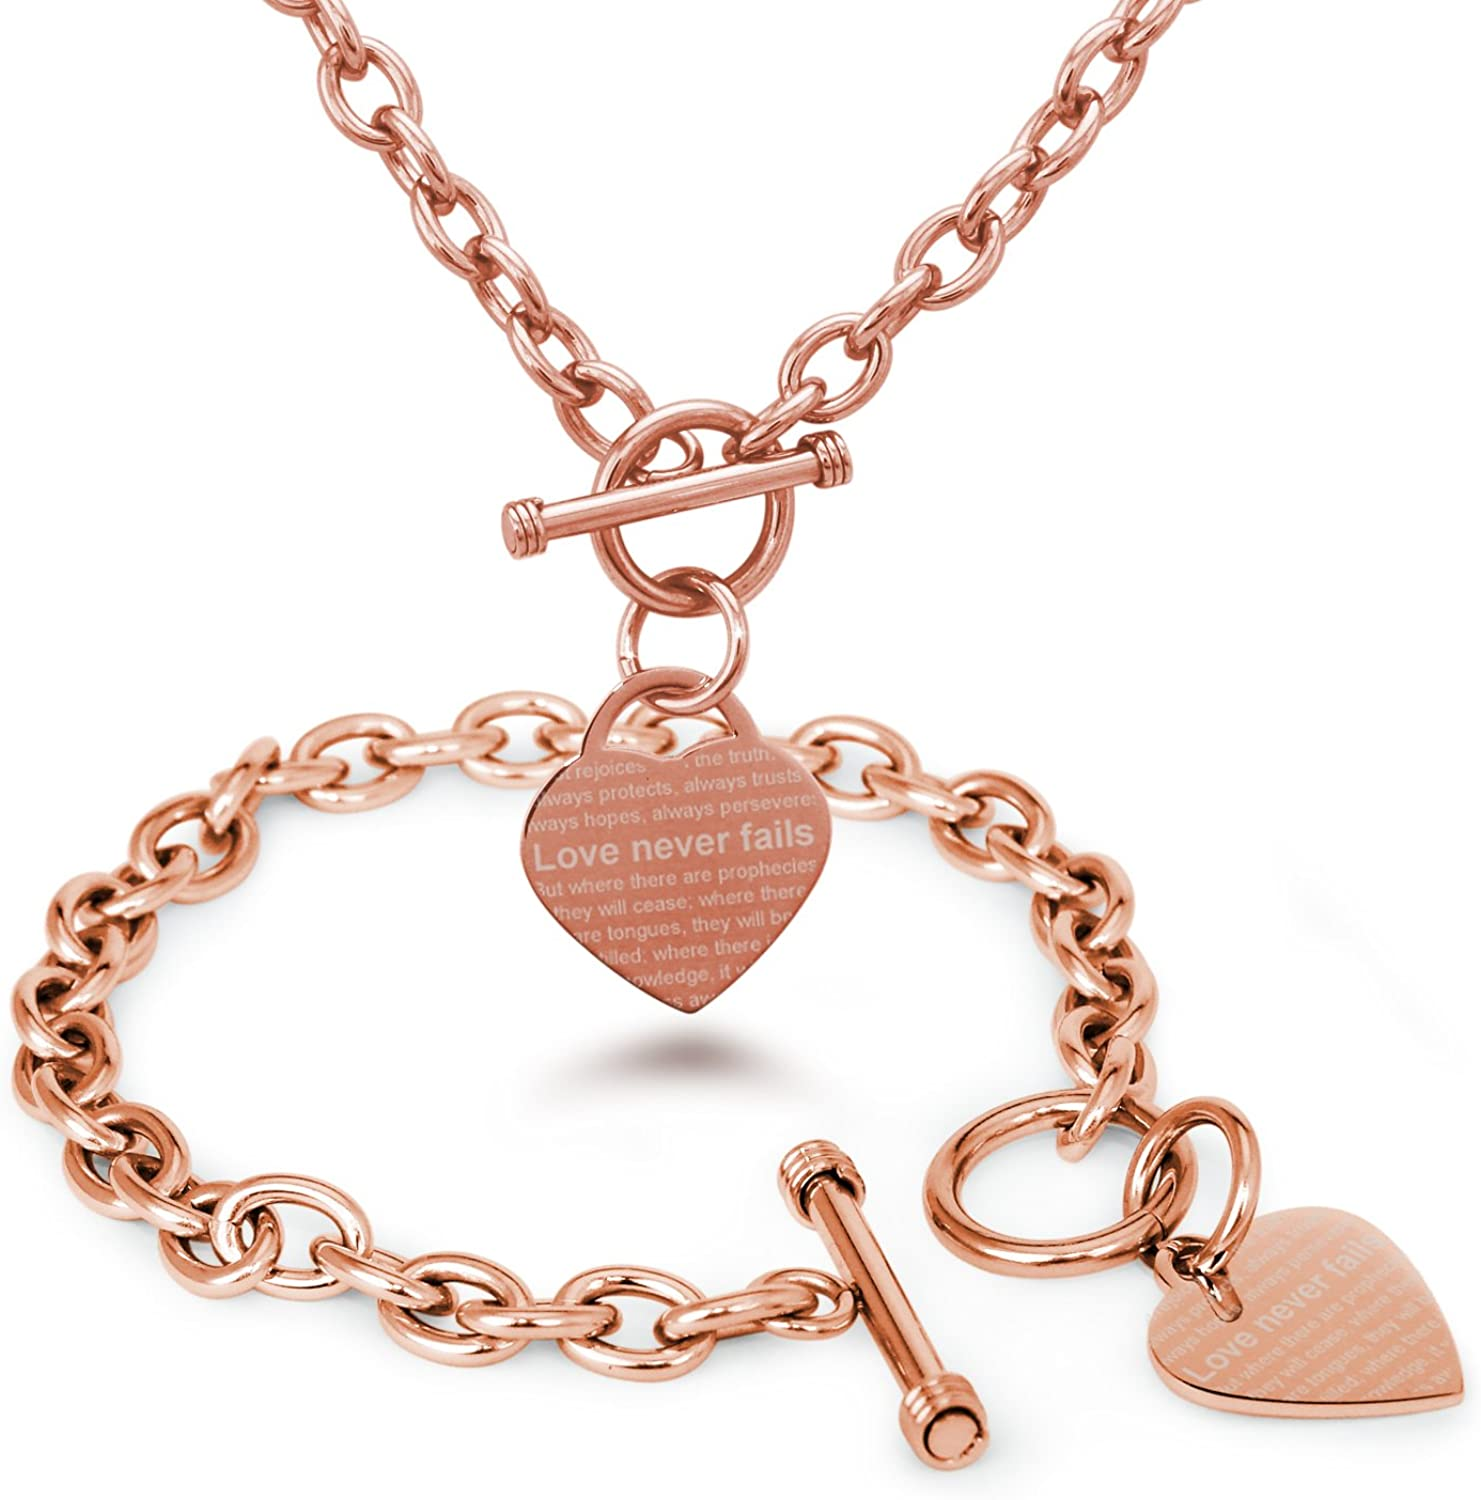 Tioneer Rose Gold Plated Stainless Steel Love Never Fails 1 Corinthians 13: 6-8 Heart Charm, Bracelet and Necklace Set